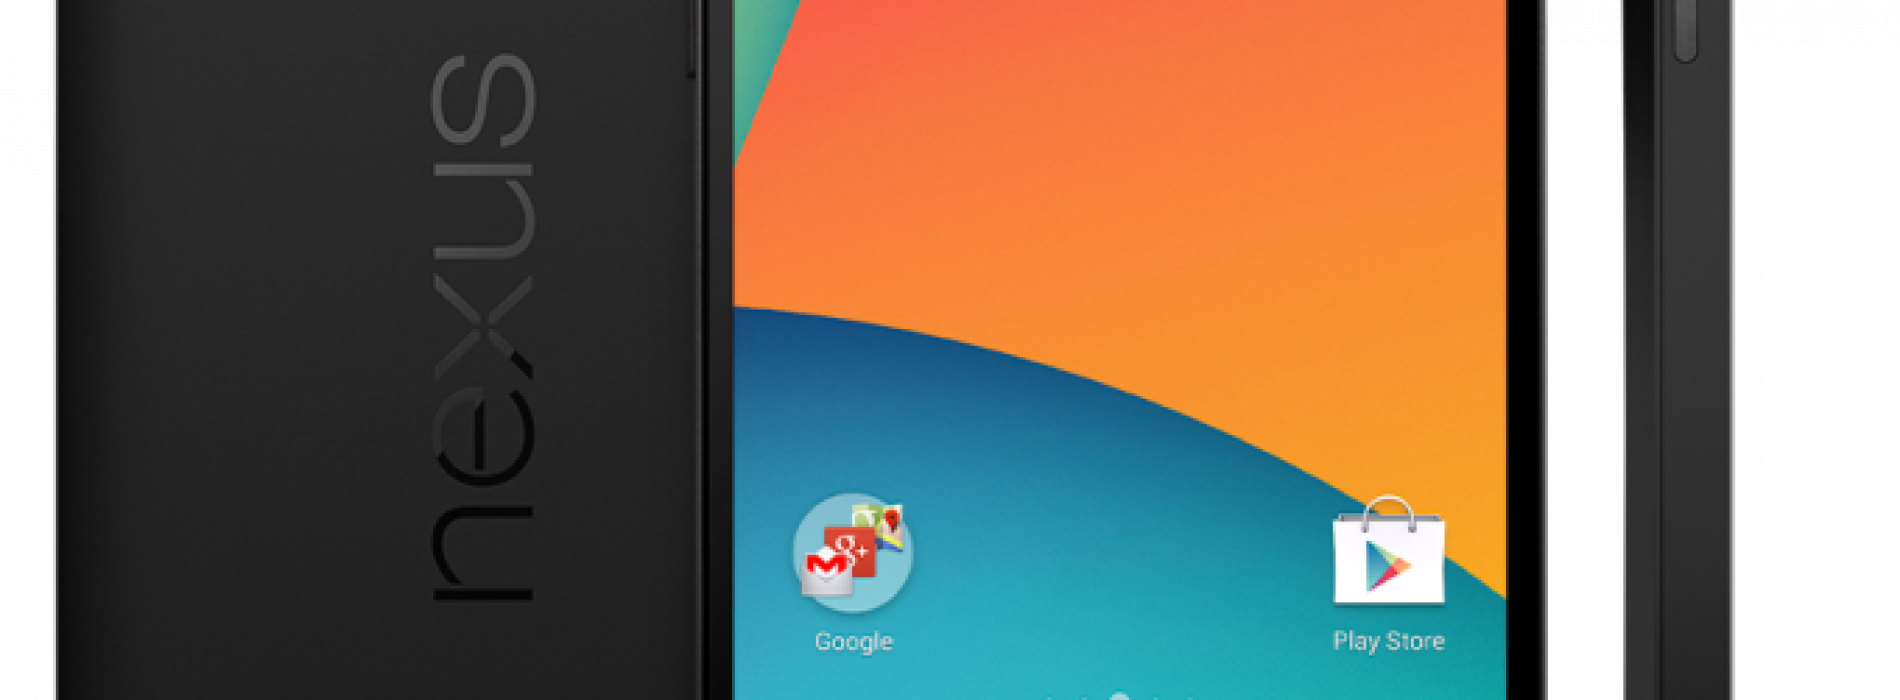 At long last, the Nexus 5 is official